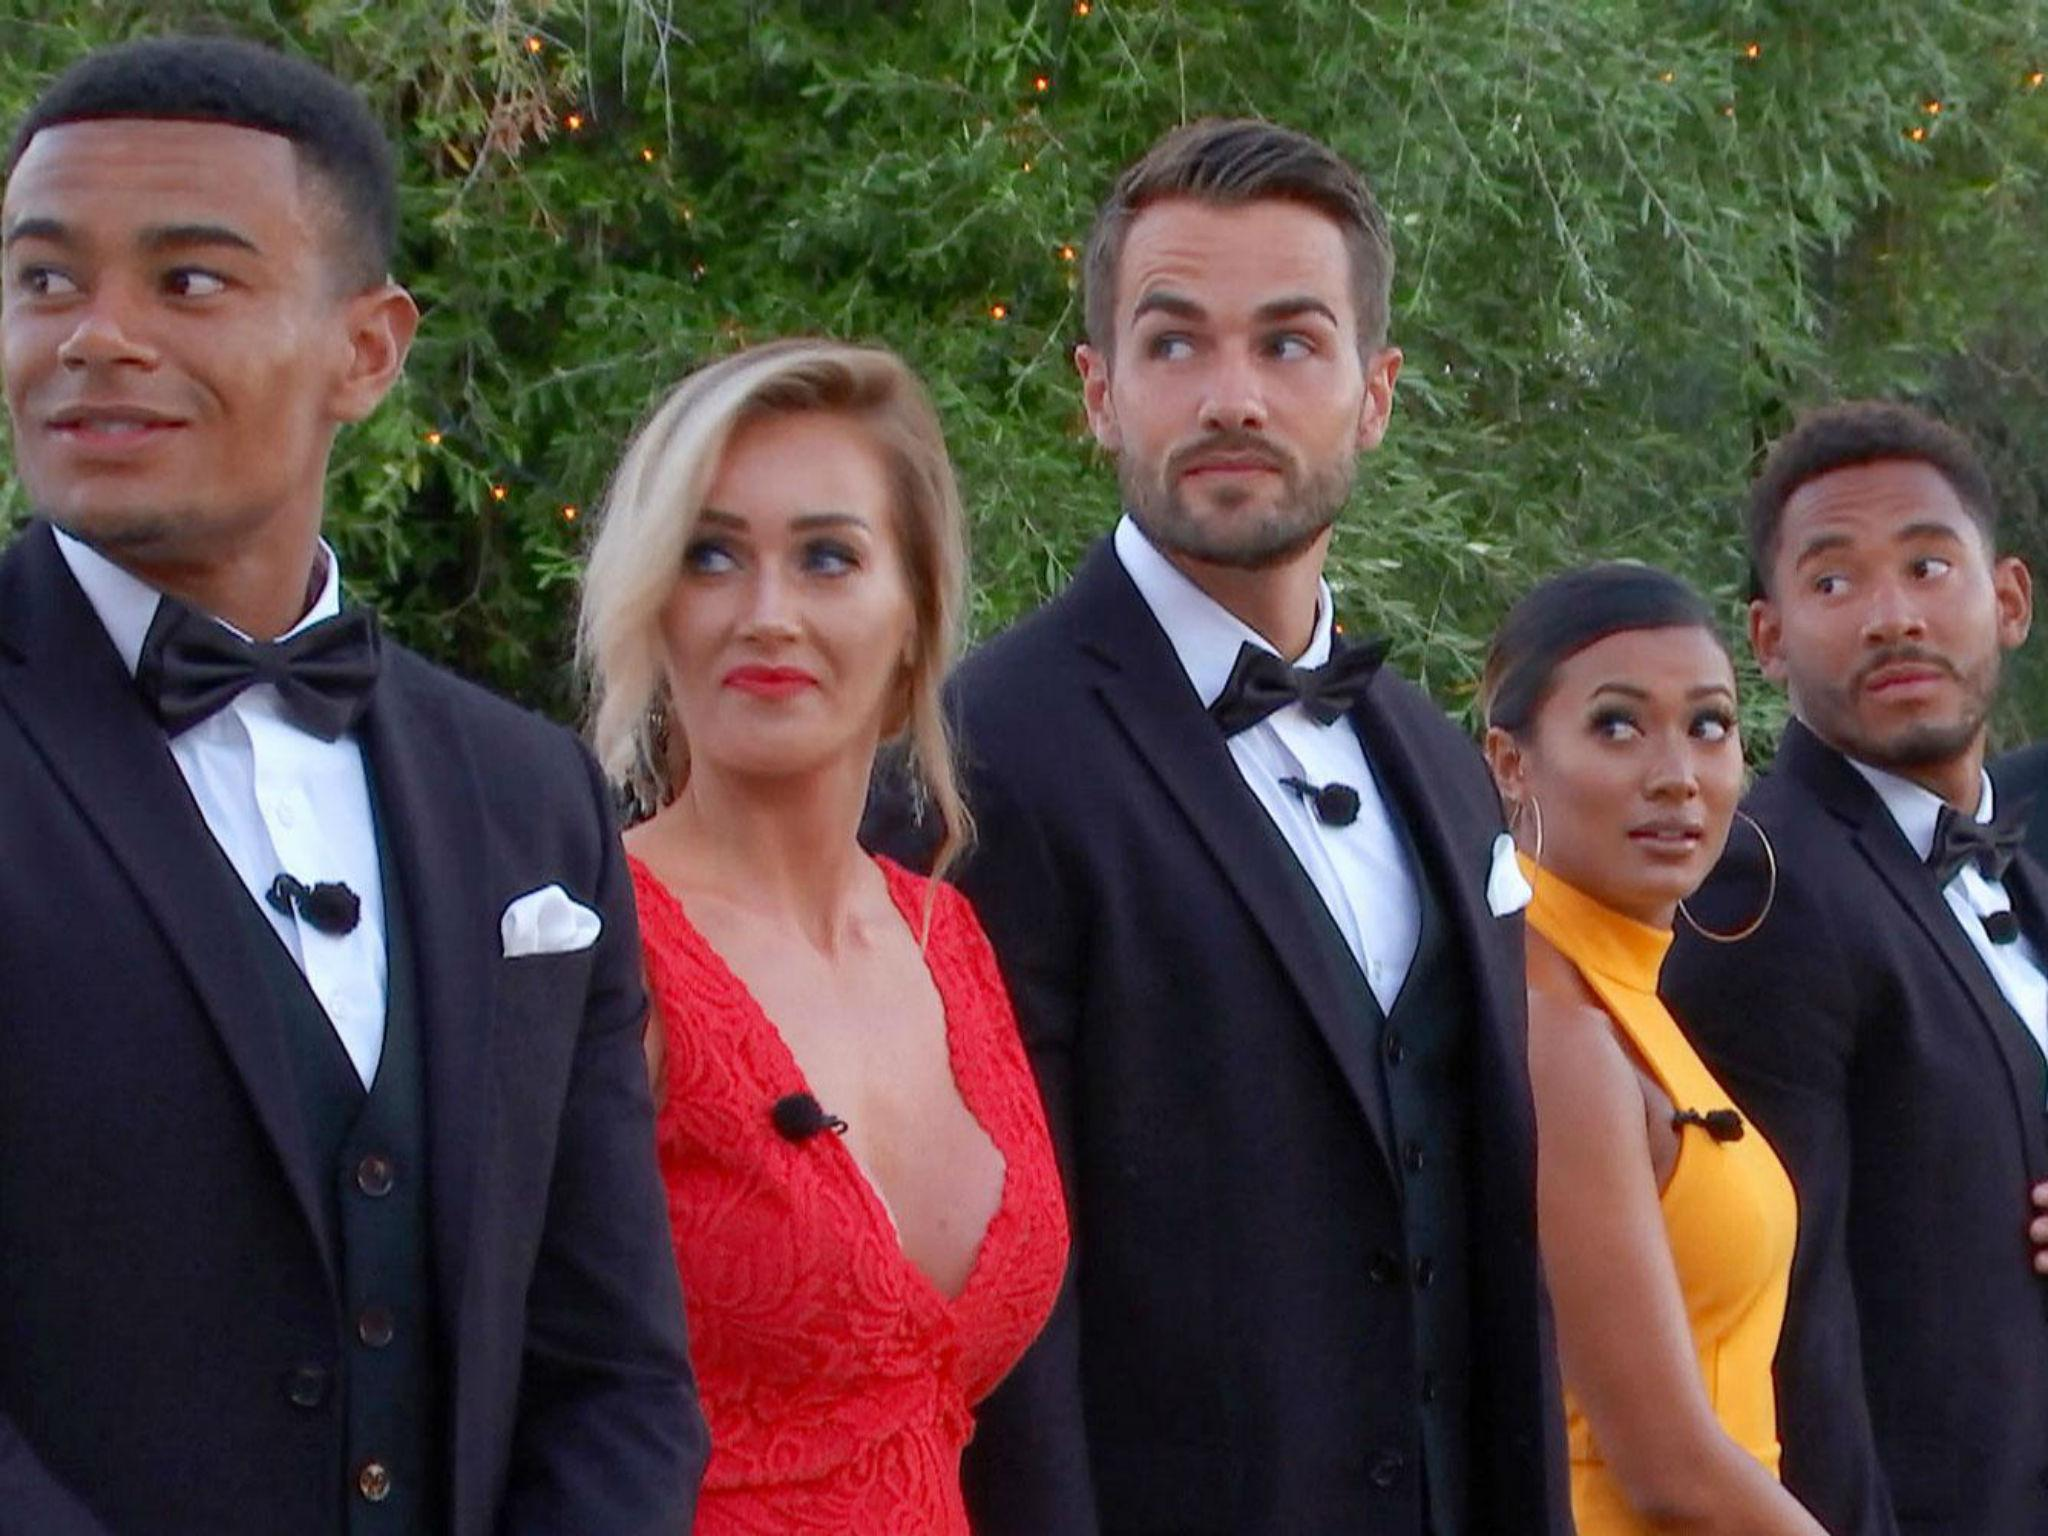 Love Island 2018 Winners Dani Dyer And Jack Fincham Win This Year S Series The Independent The Independent